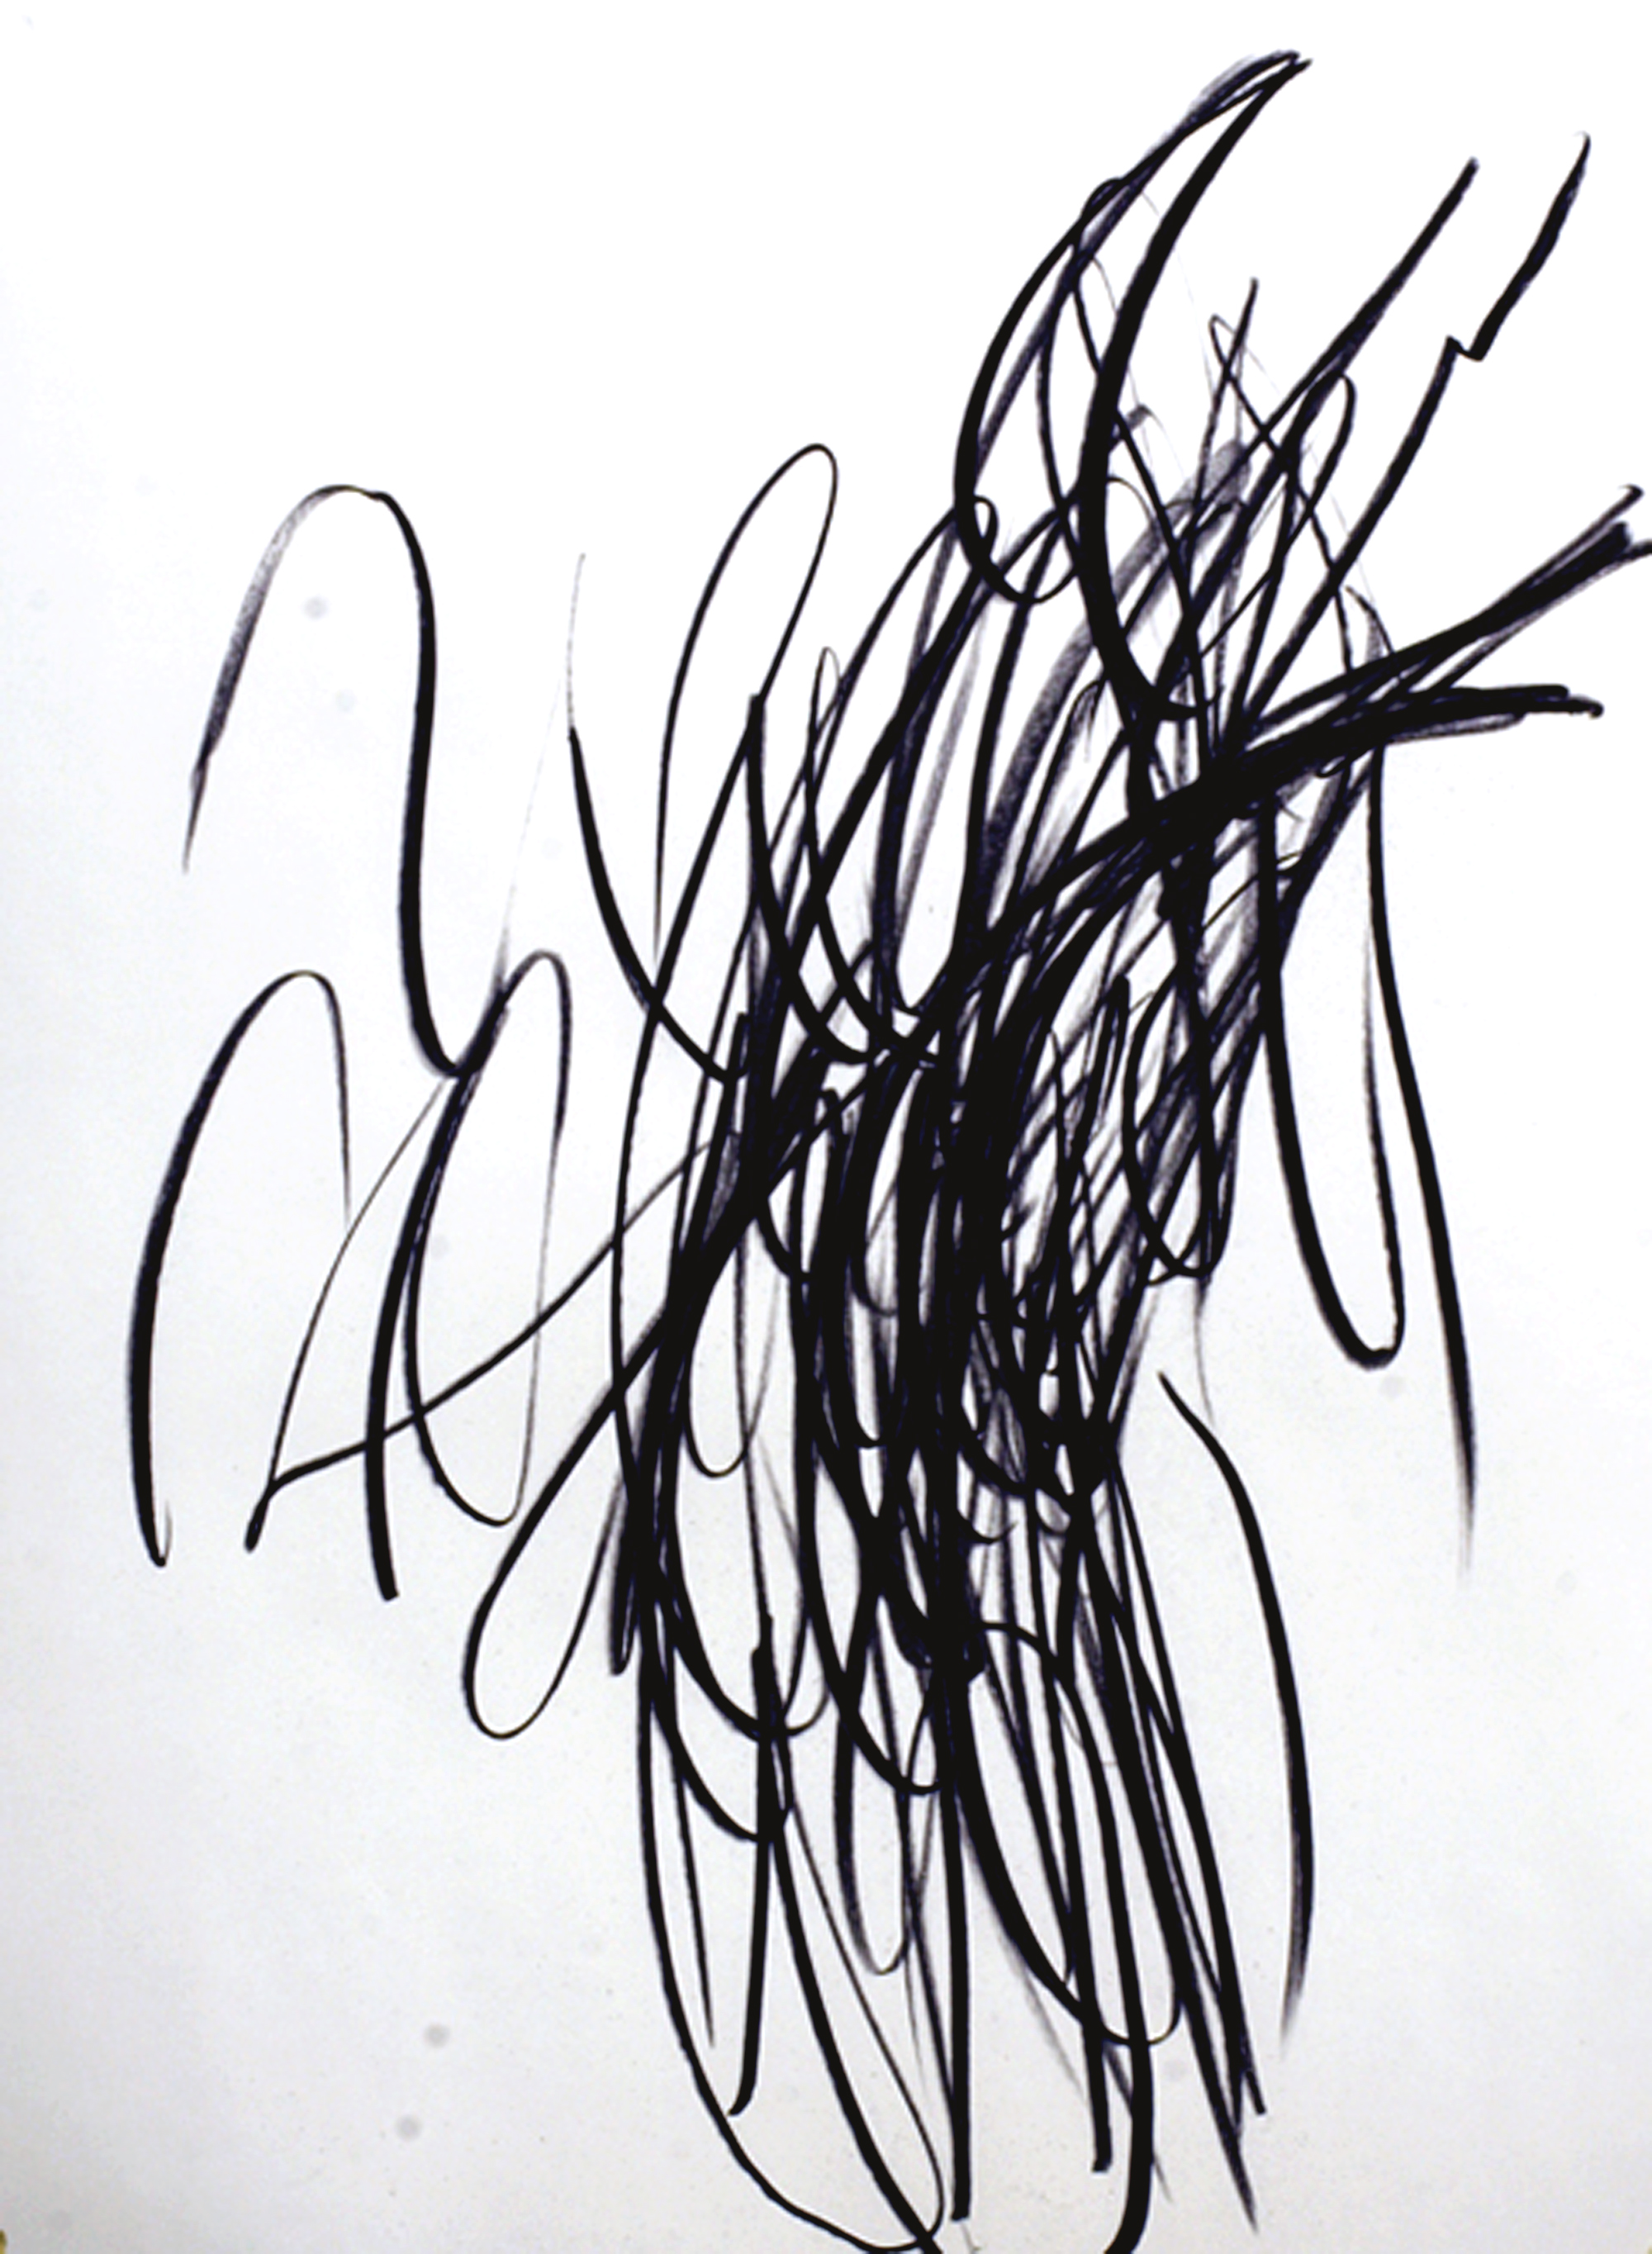 blurb-abstract-drawing-13